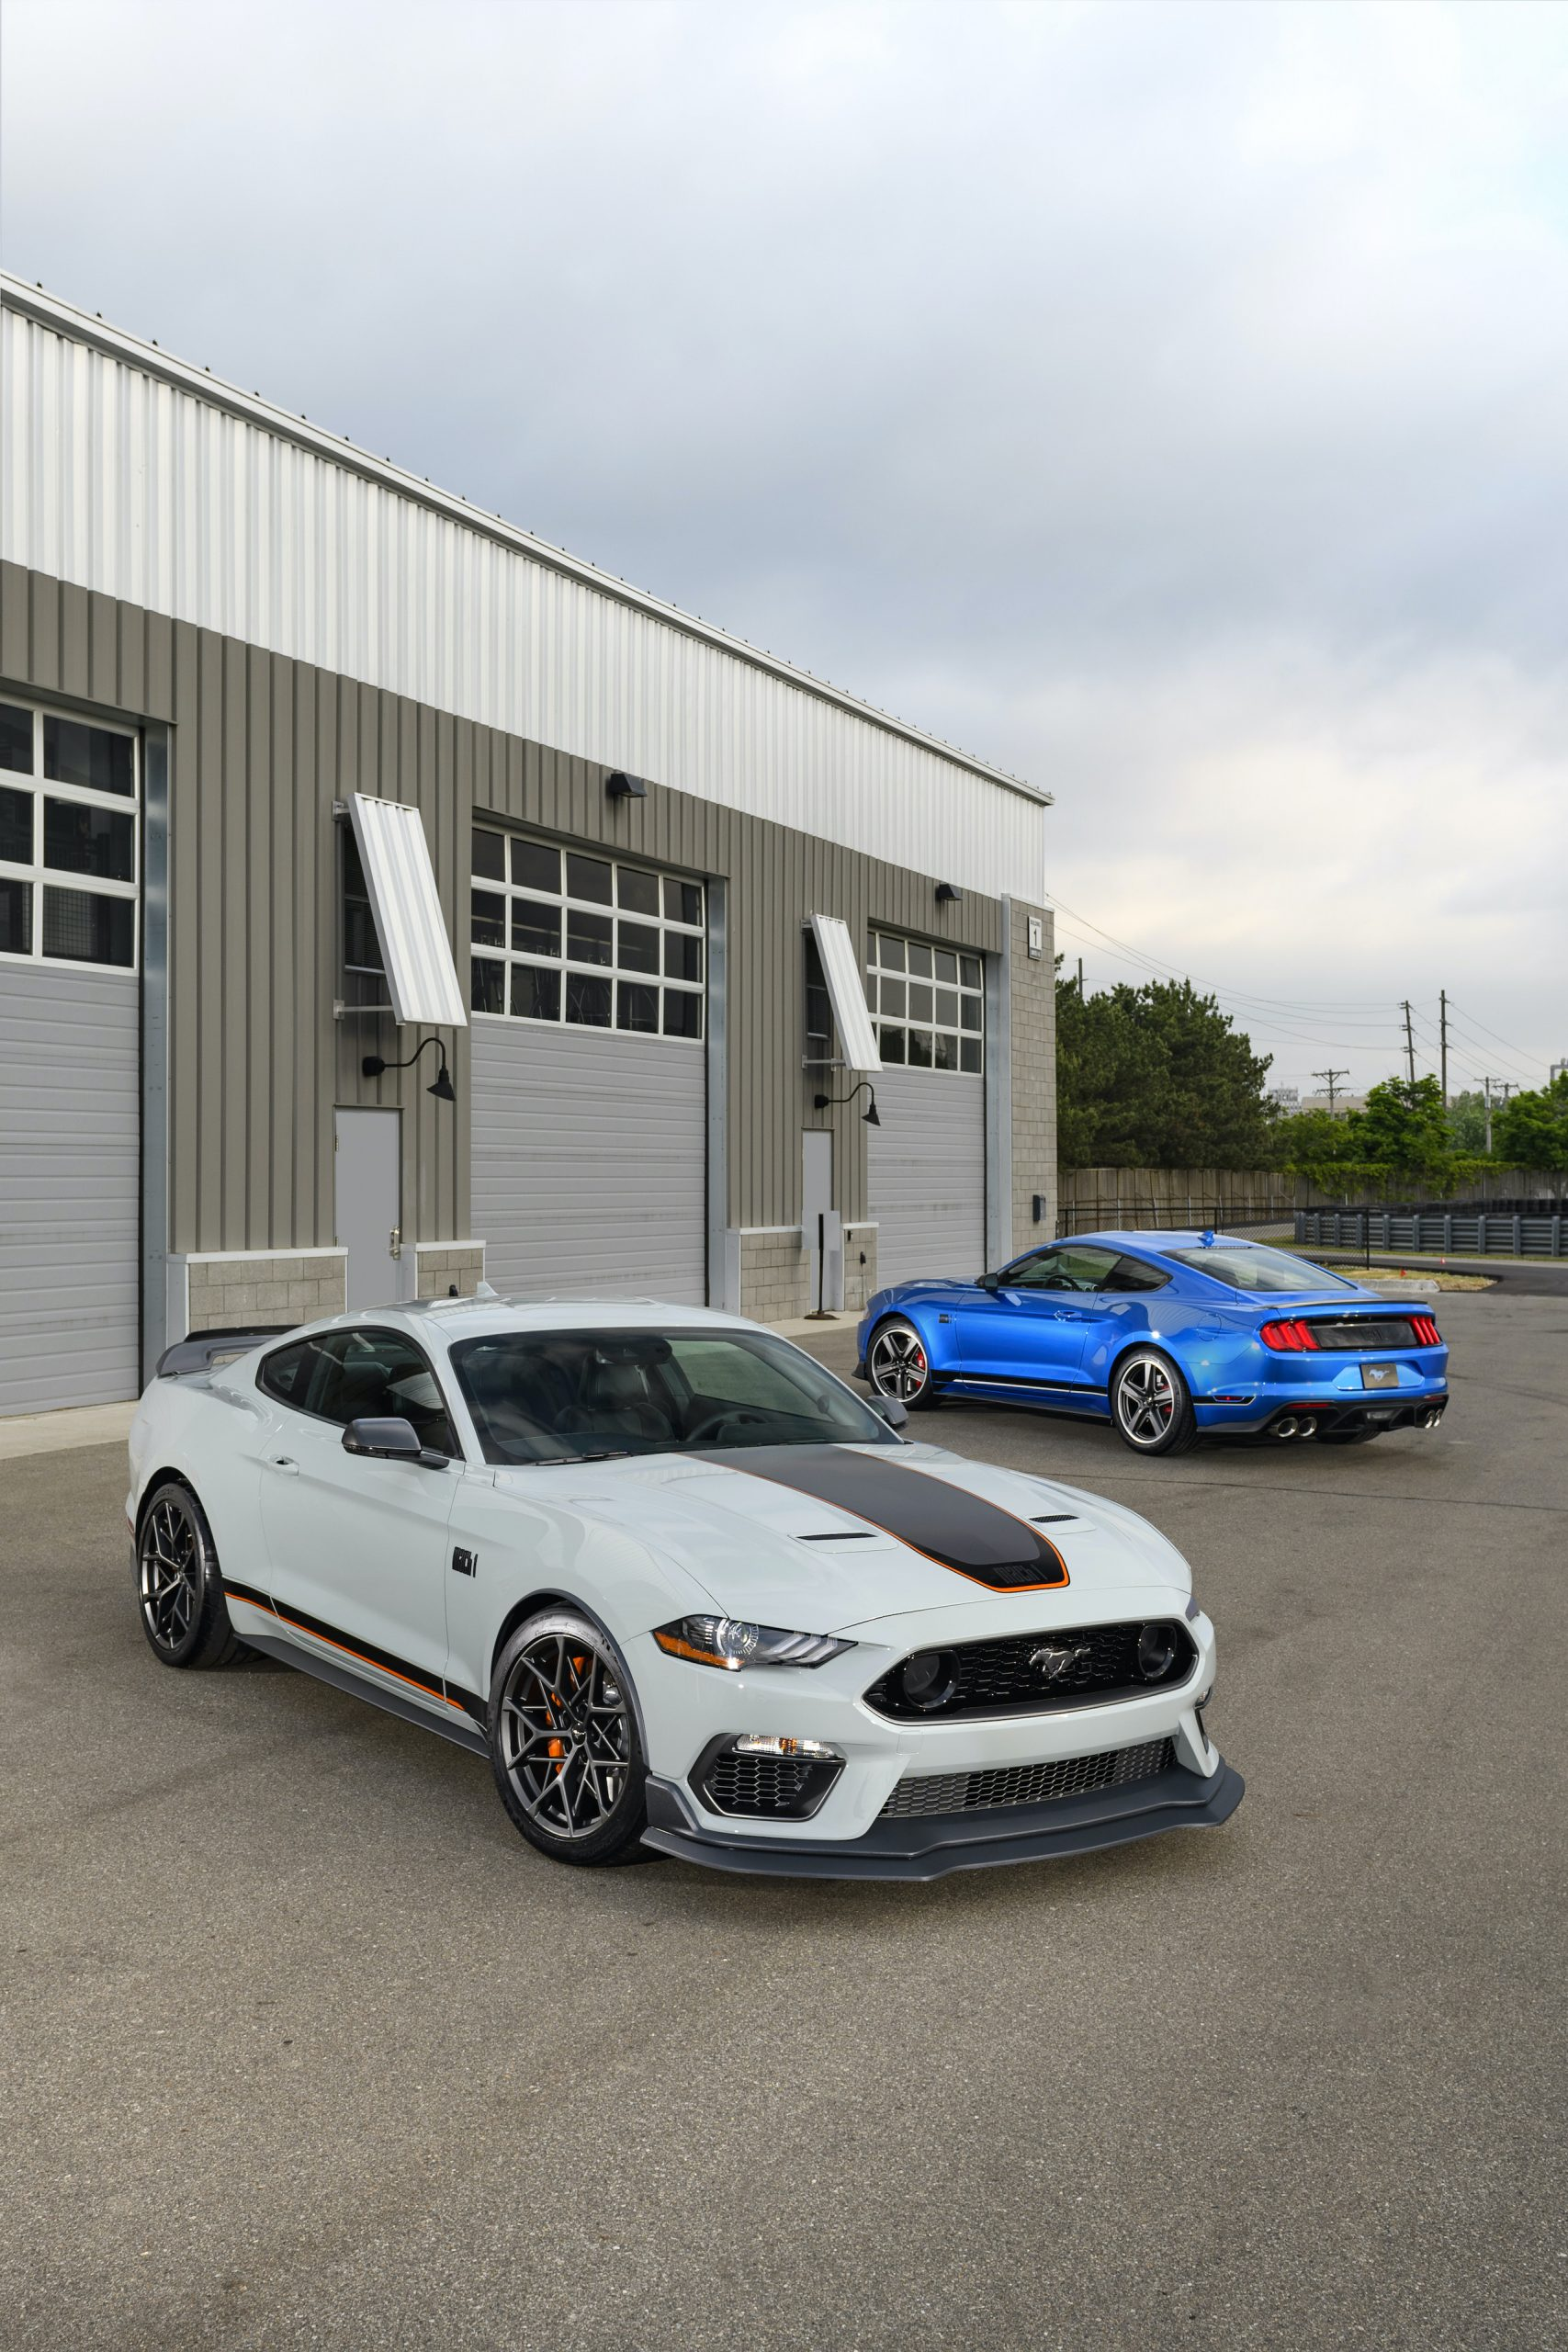 2021 Mustang Mach 1 white front three-quarter with blue vertical